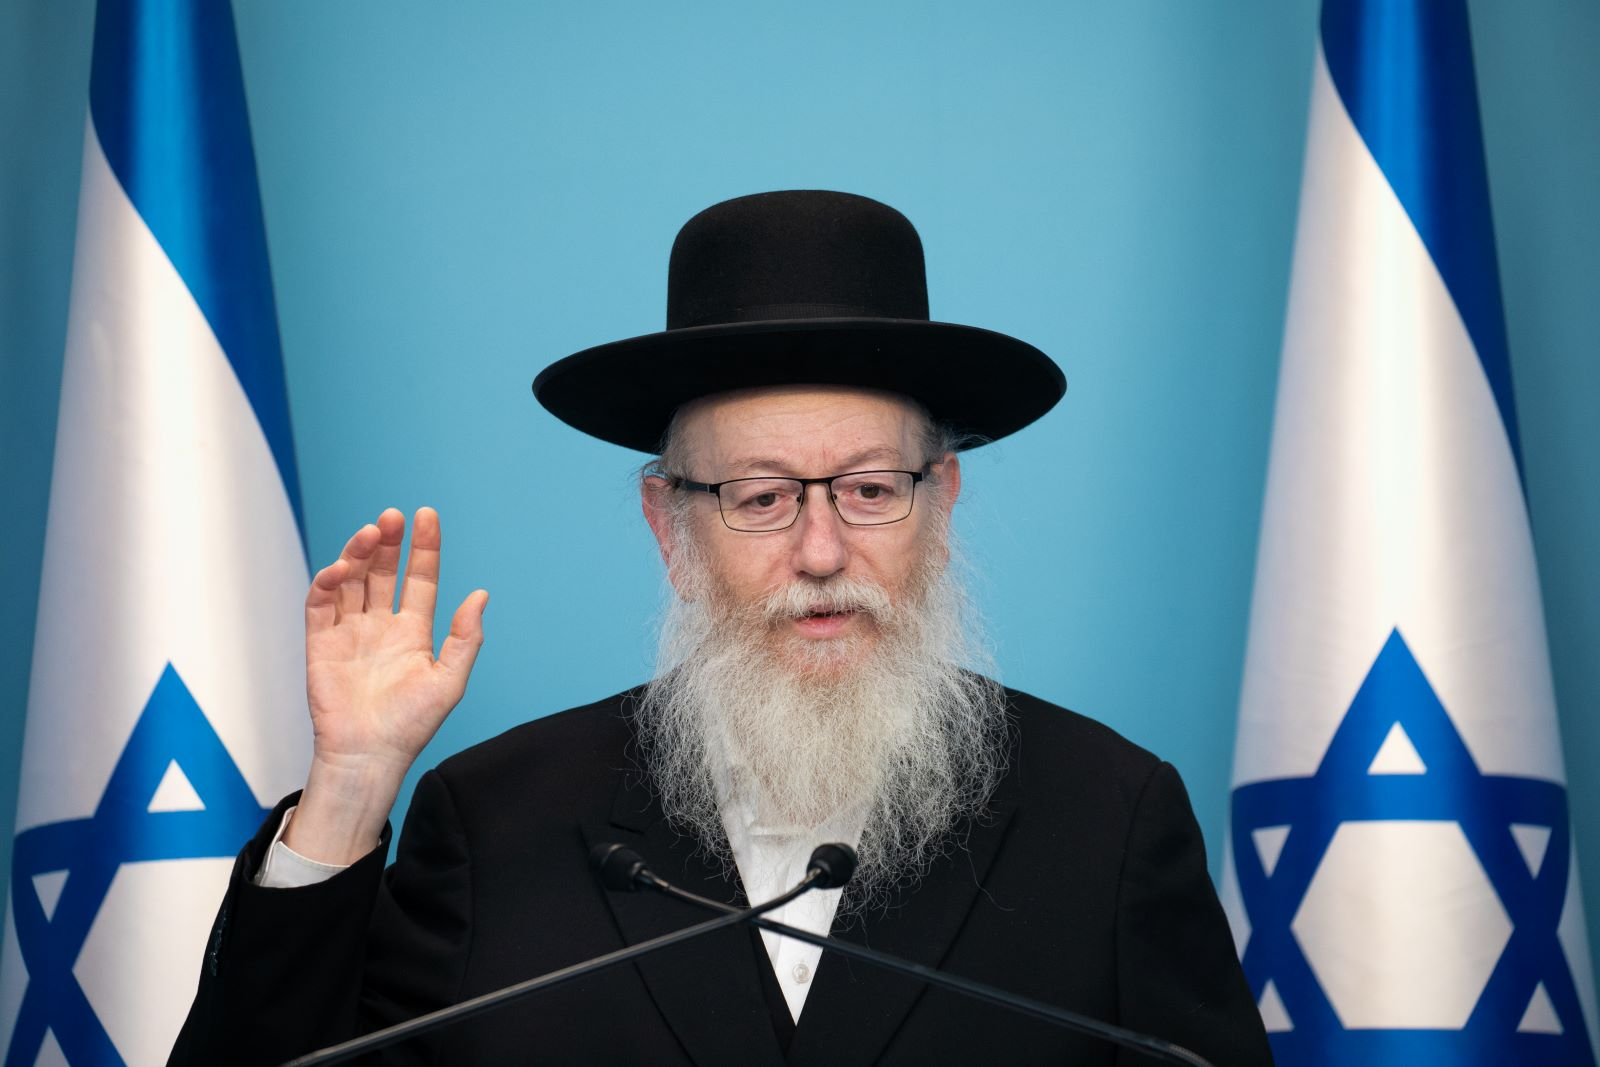 Health minister Yaakov Litzman speaks during a press conference at the Prime Ministers office in Jerusalem on March 12, 2020. (Olivier Fitoussi/Flash90)